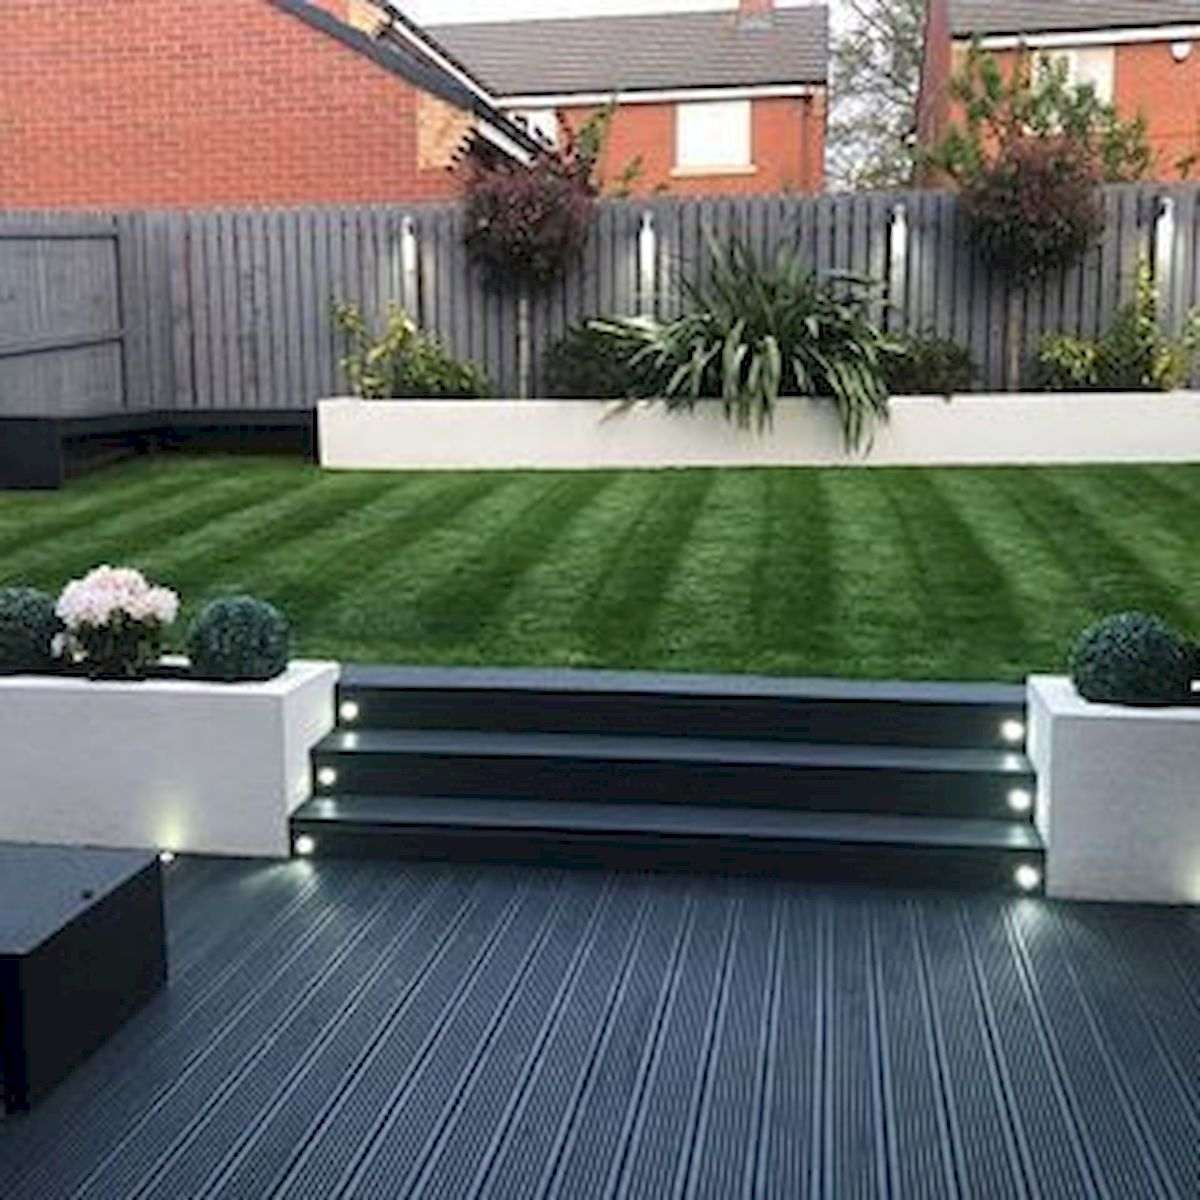 40 Fabulous Modern Garden Designs Ideas For Front Yard and ... on Patio And Grass Garden Ideas id=60172